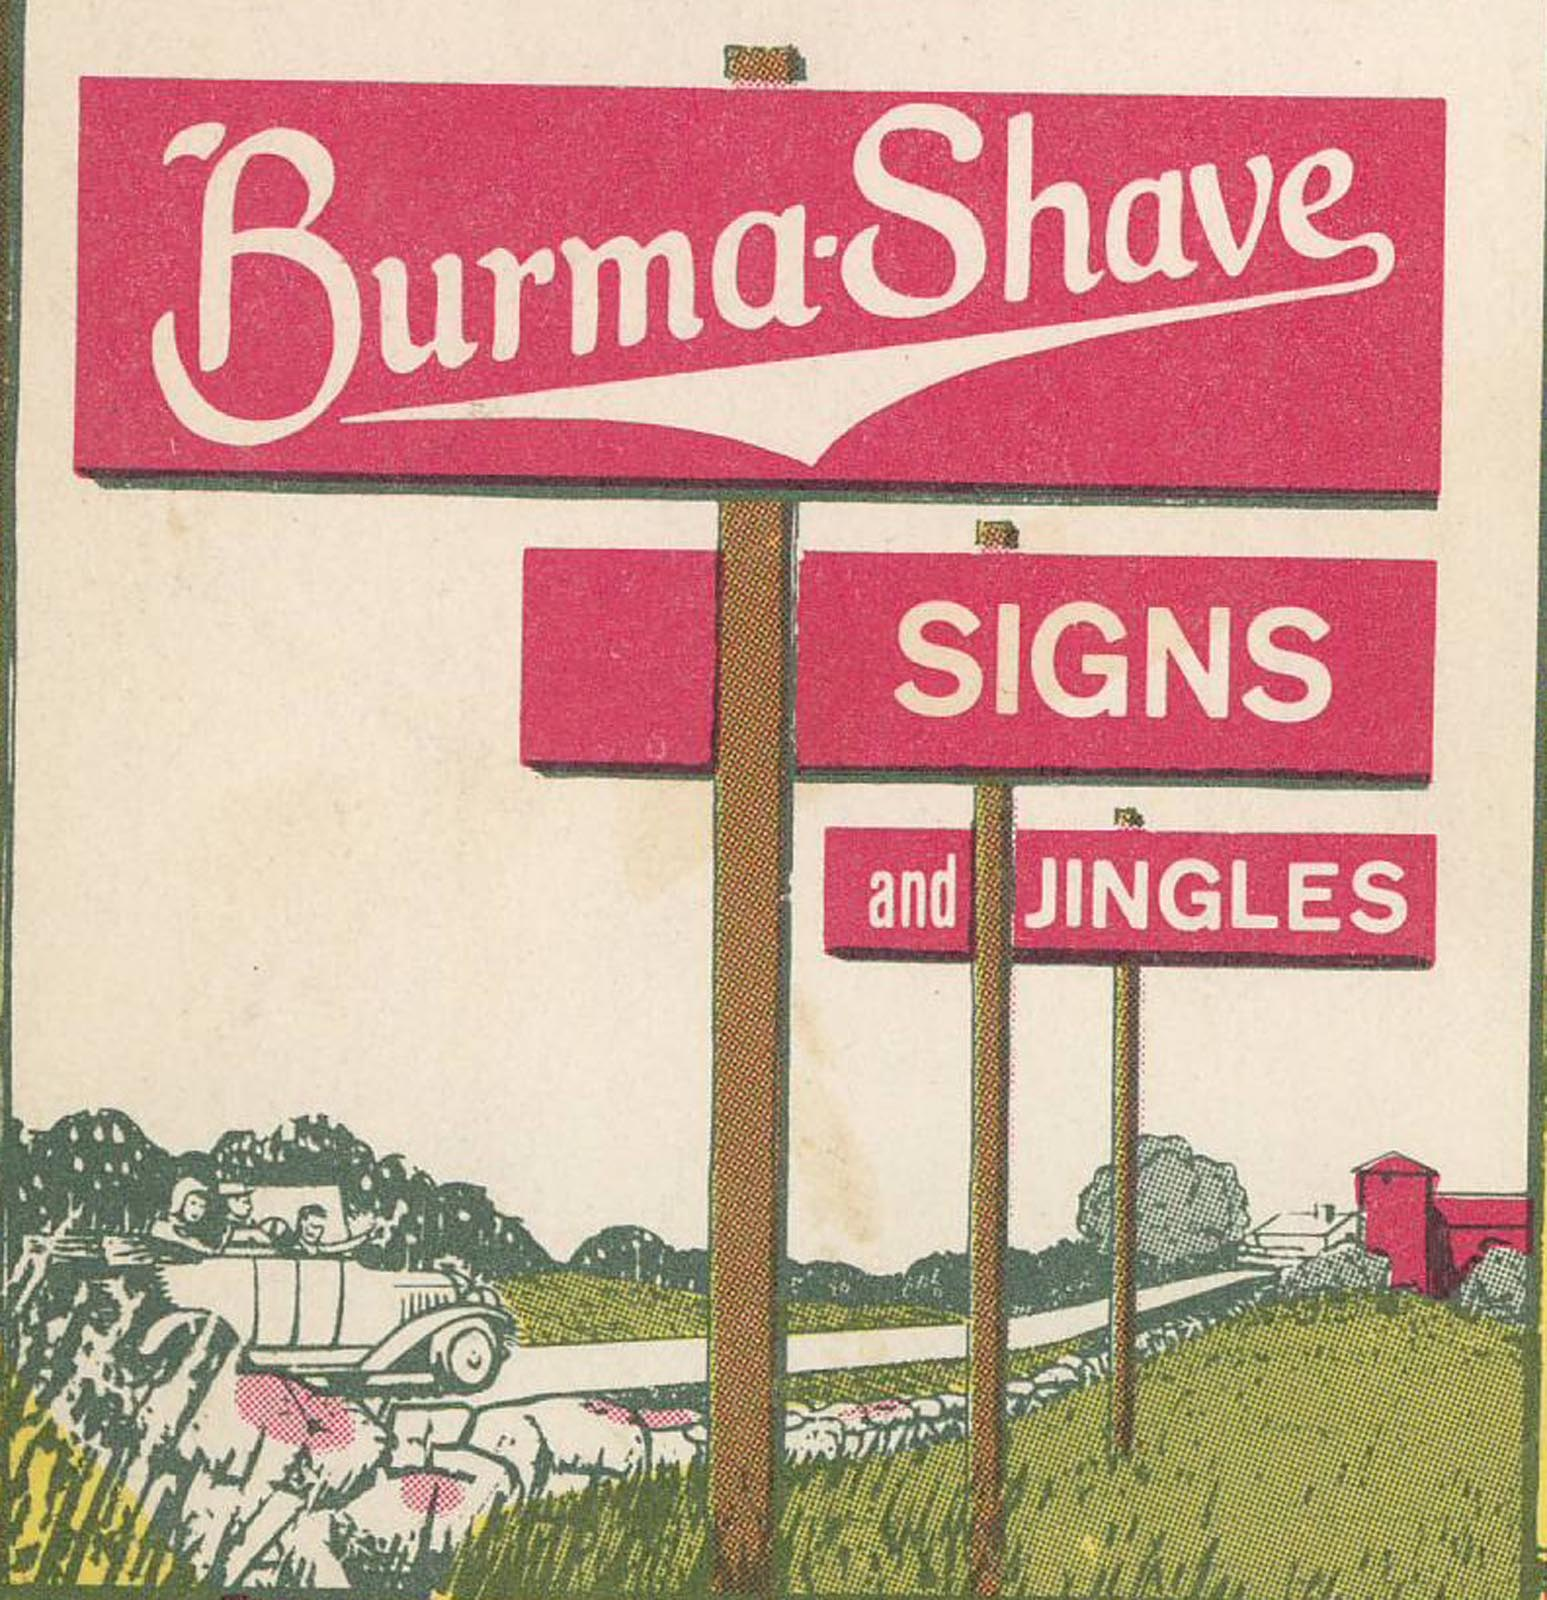 BURMA SHAVE SIGNS PROMOTED TRAFFIC SAFETY